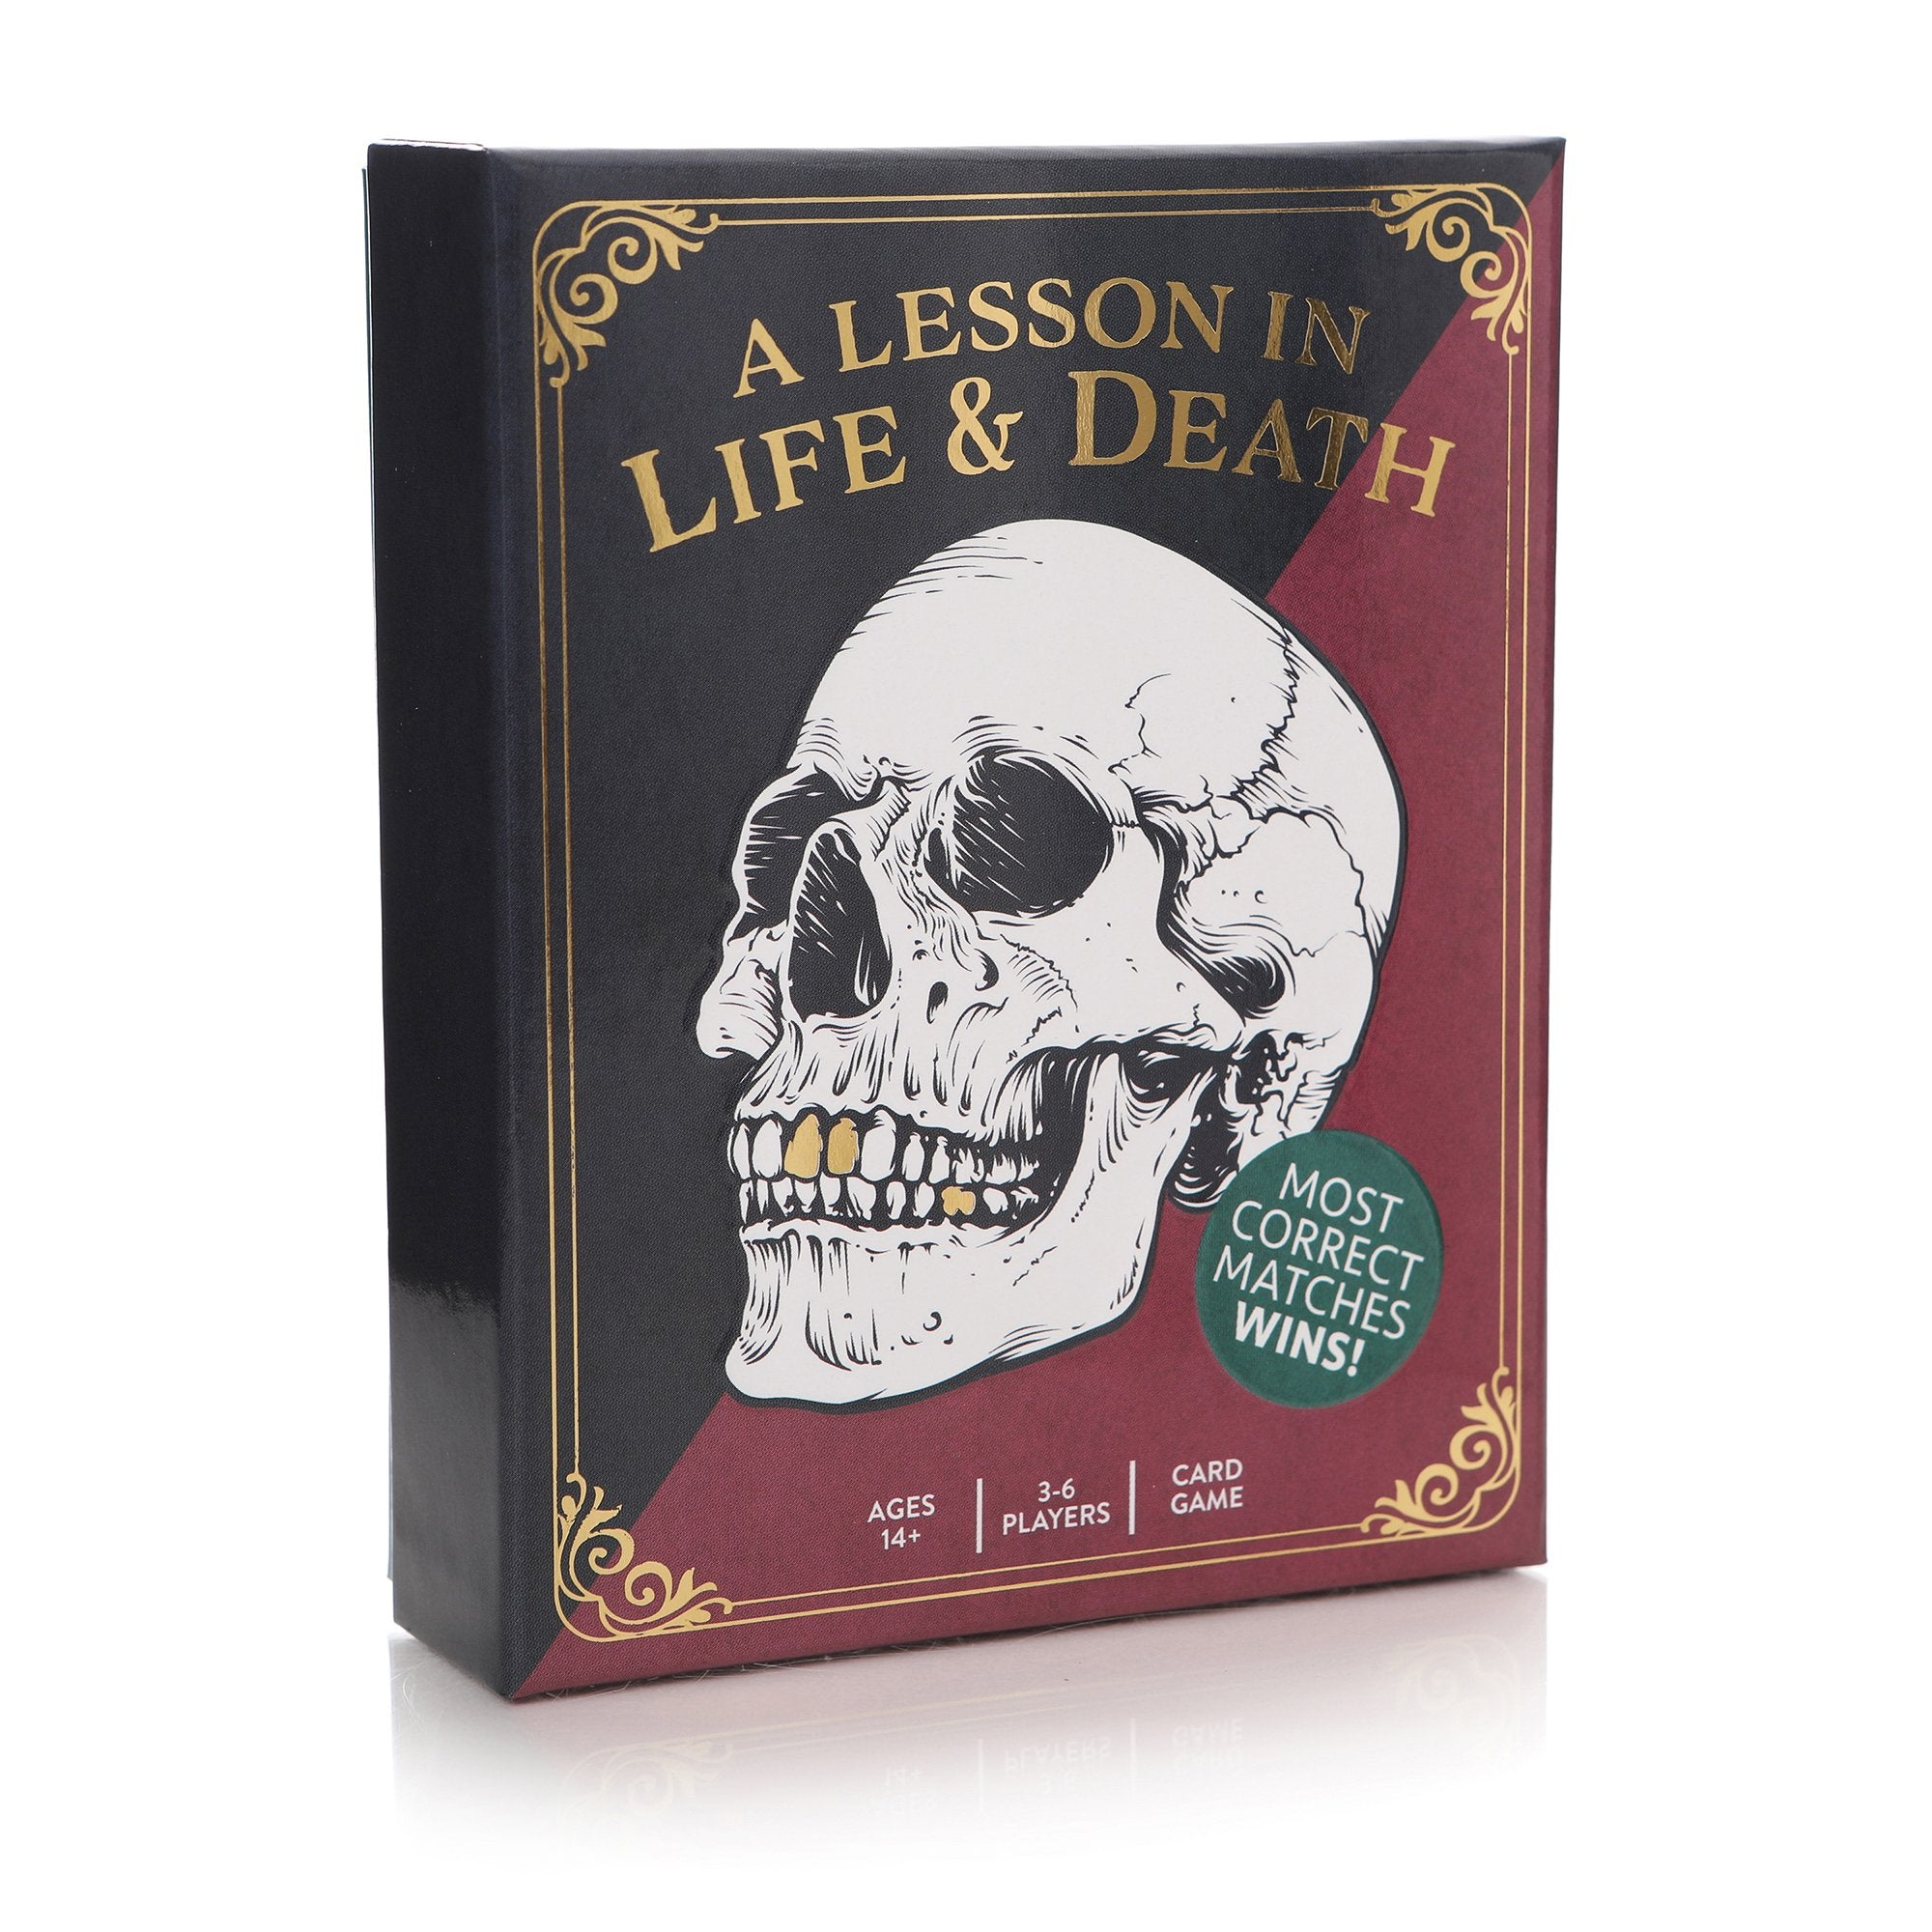 A Lesson In Life & Death Card Game - Half Moon Bay US